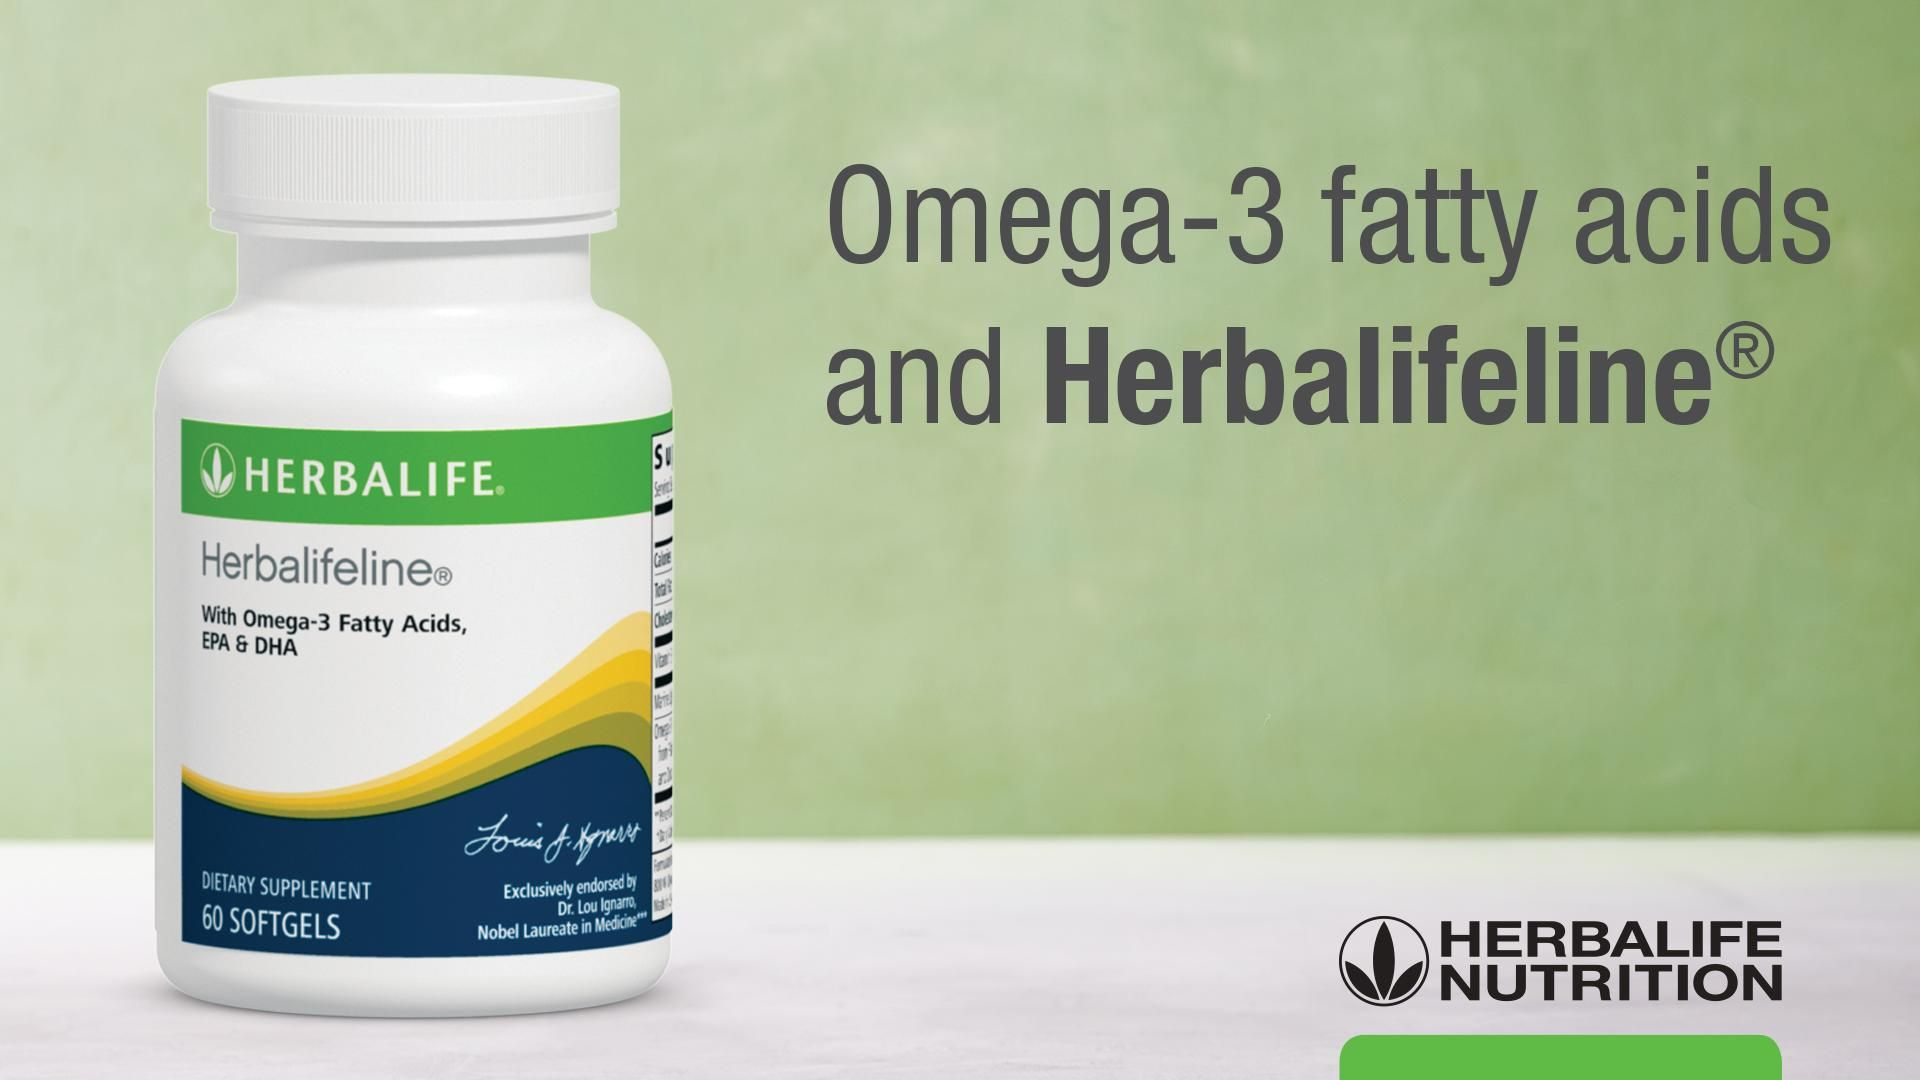 Herbalifeline®: Know the Products